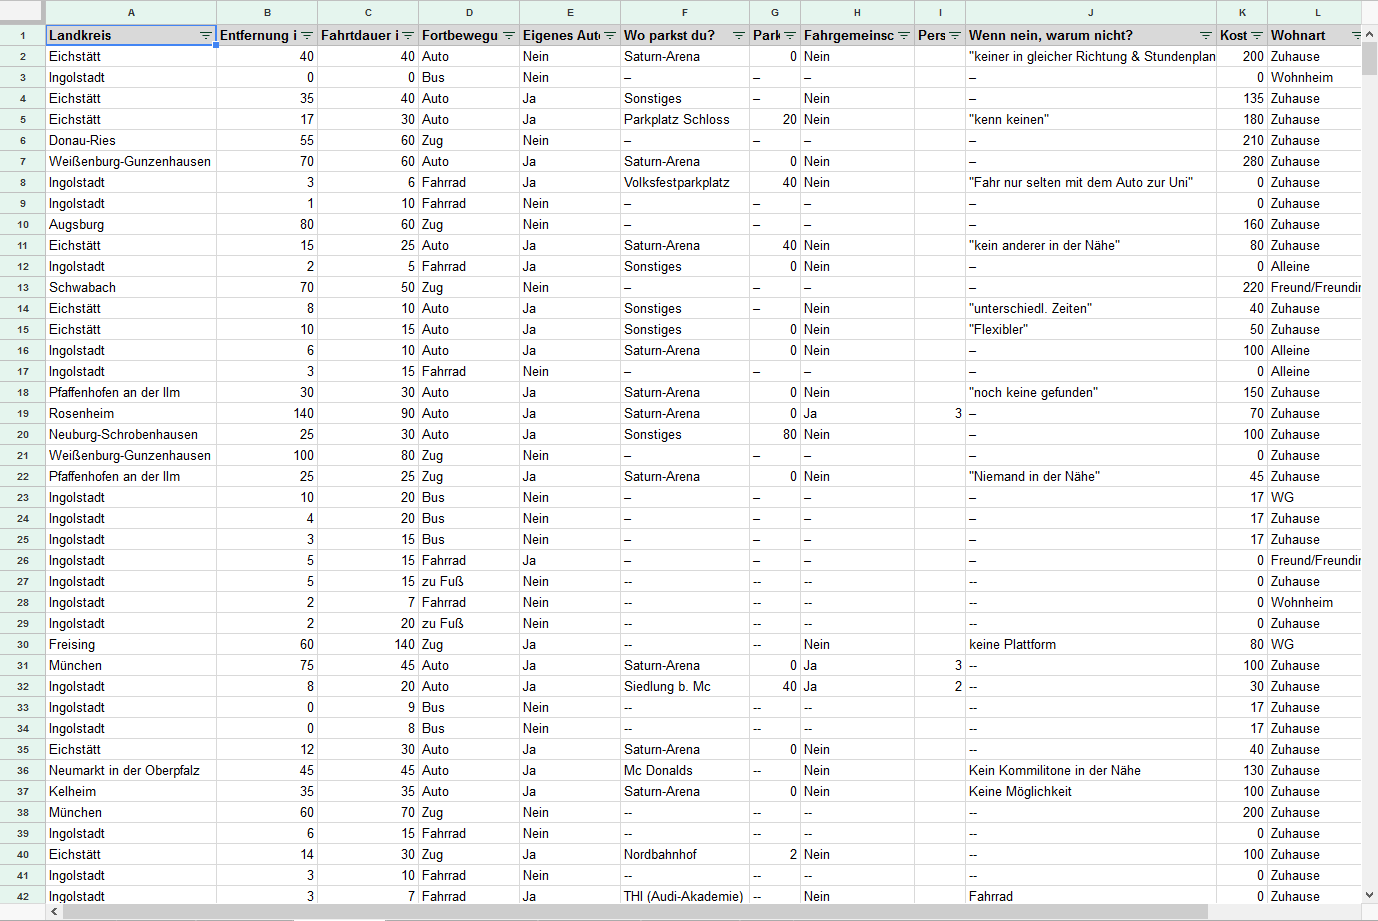 The collected data, compiled in a table.